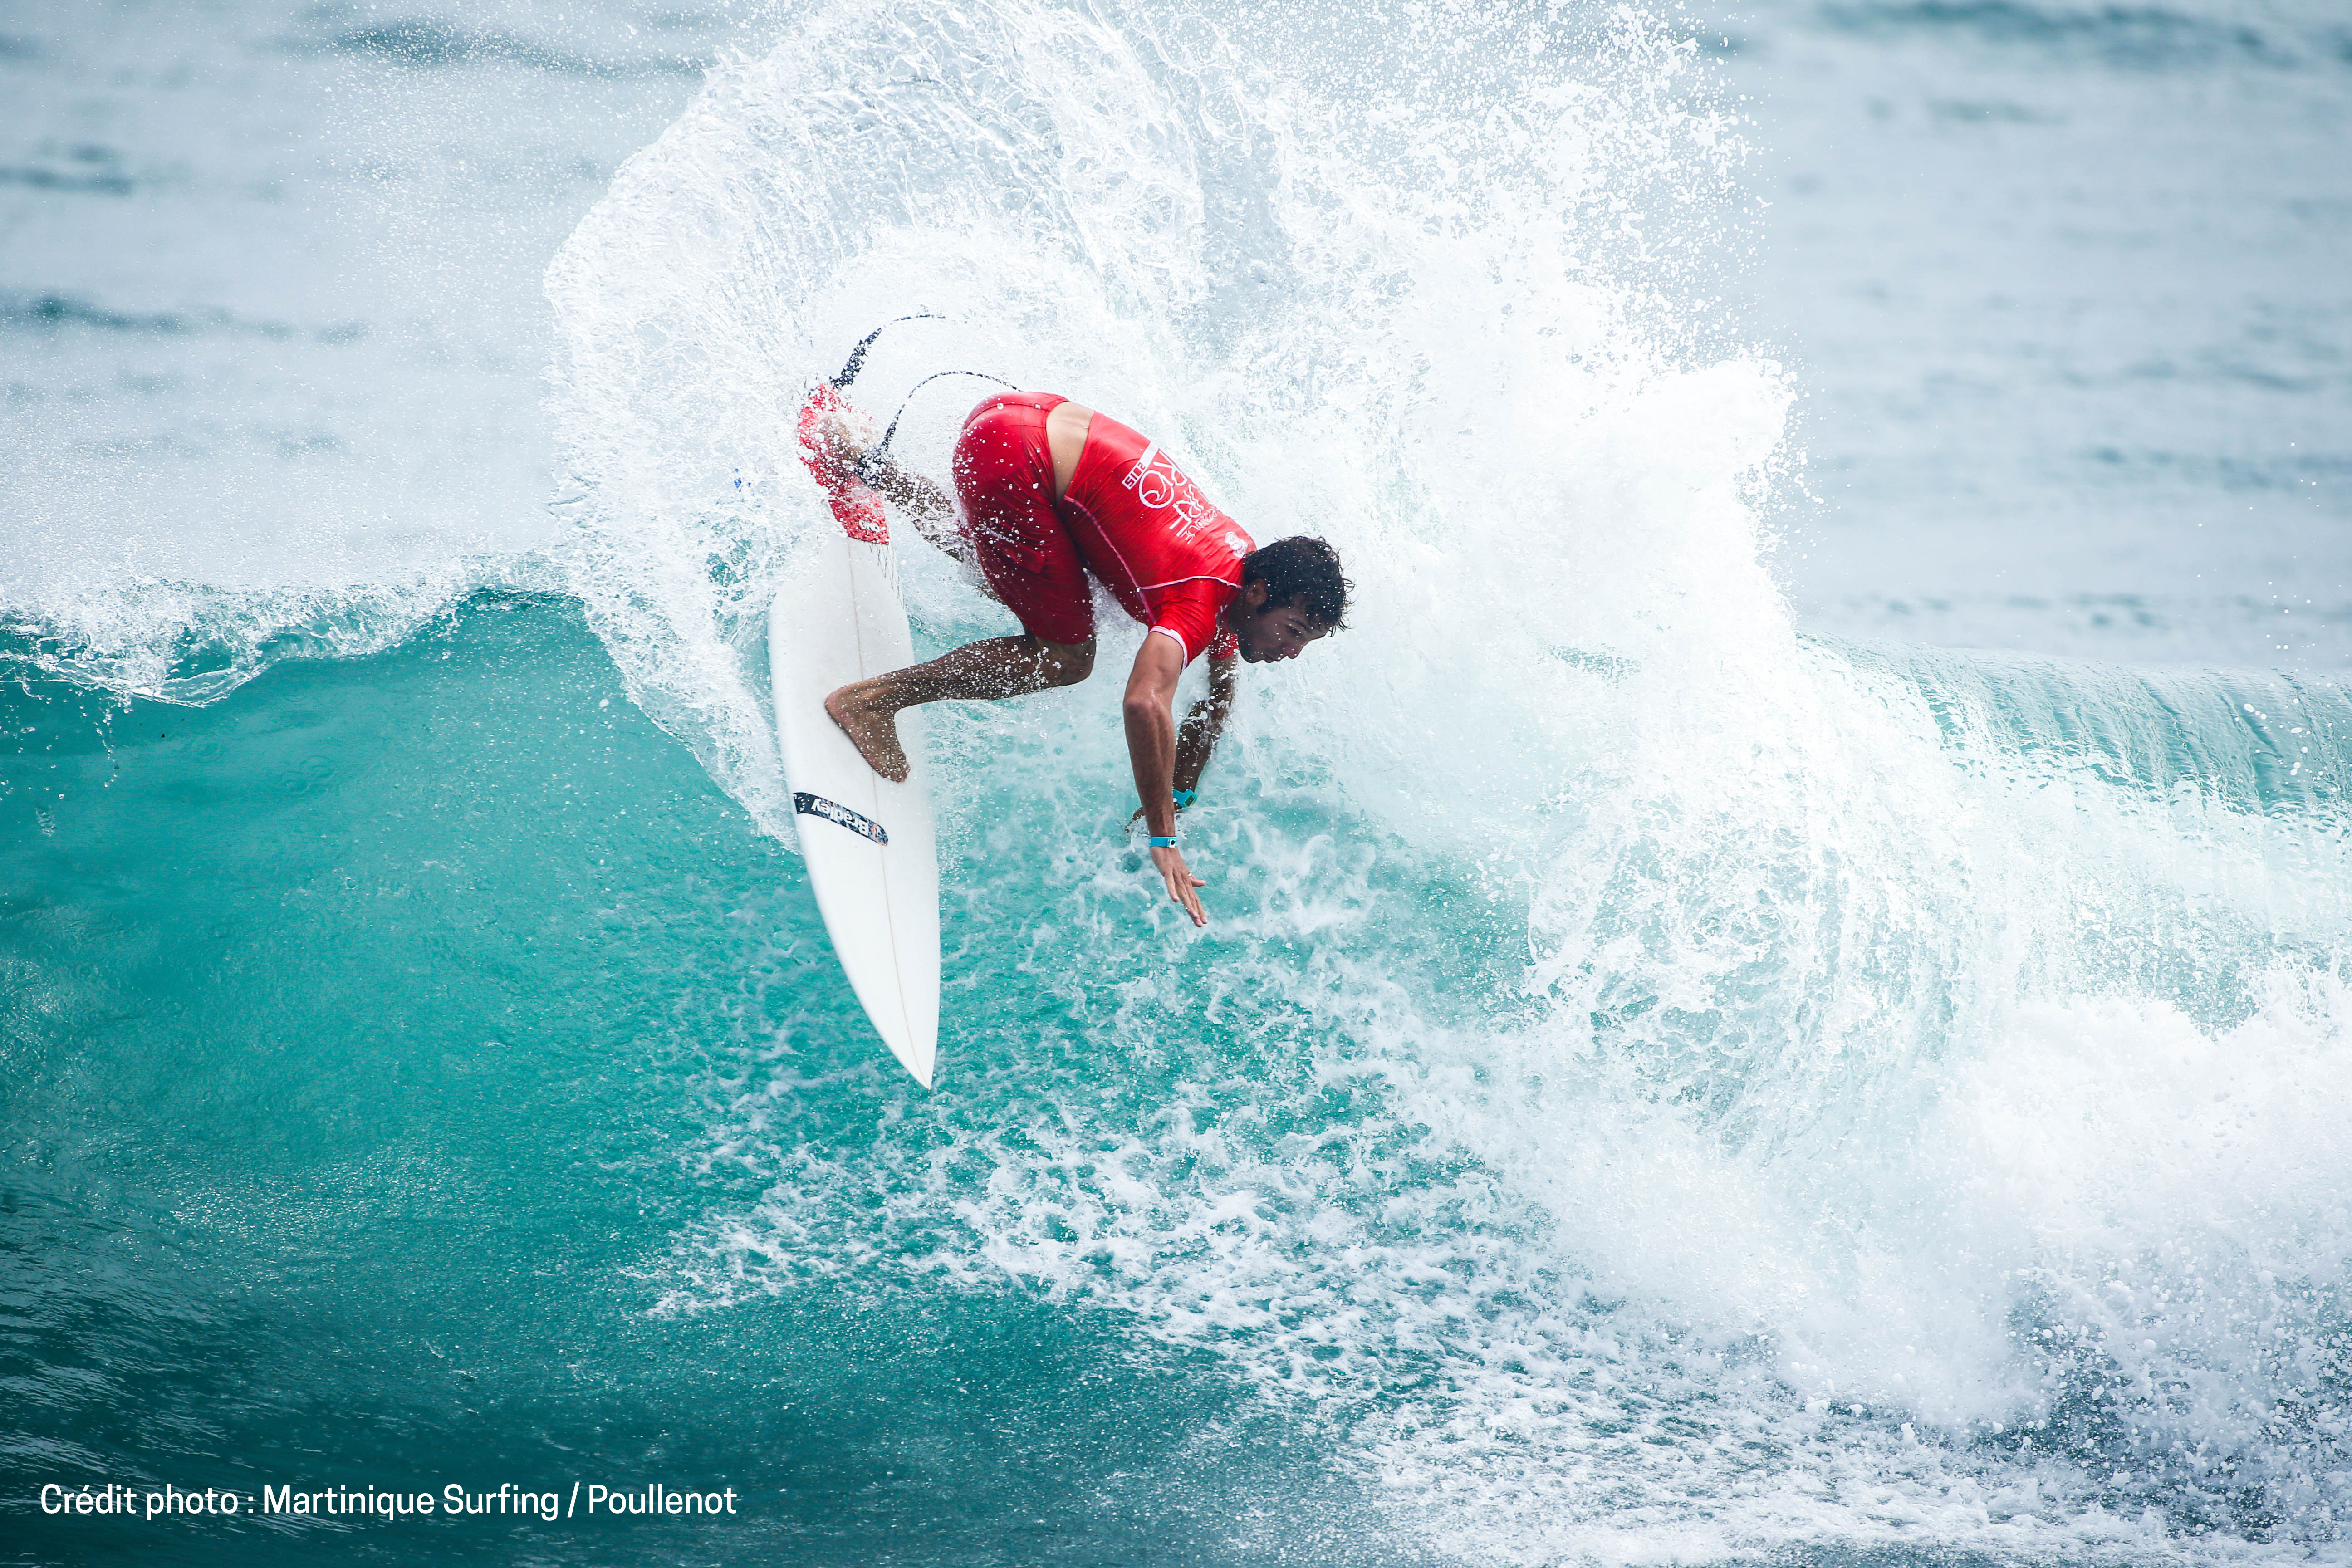 Martinique Surf Pro is back!